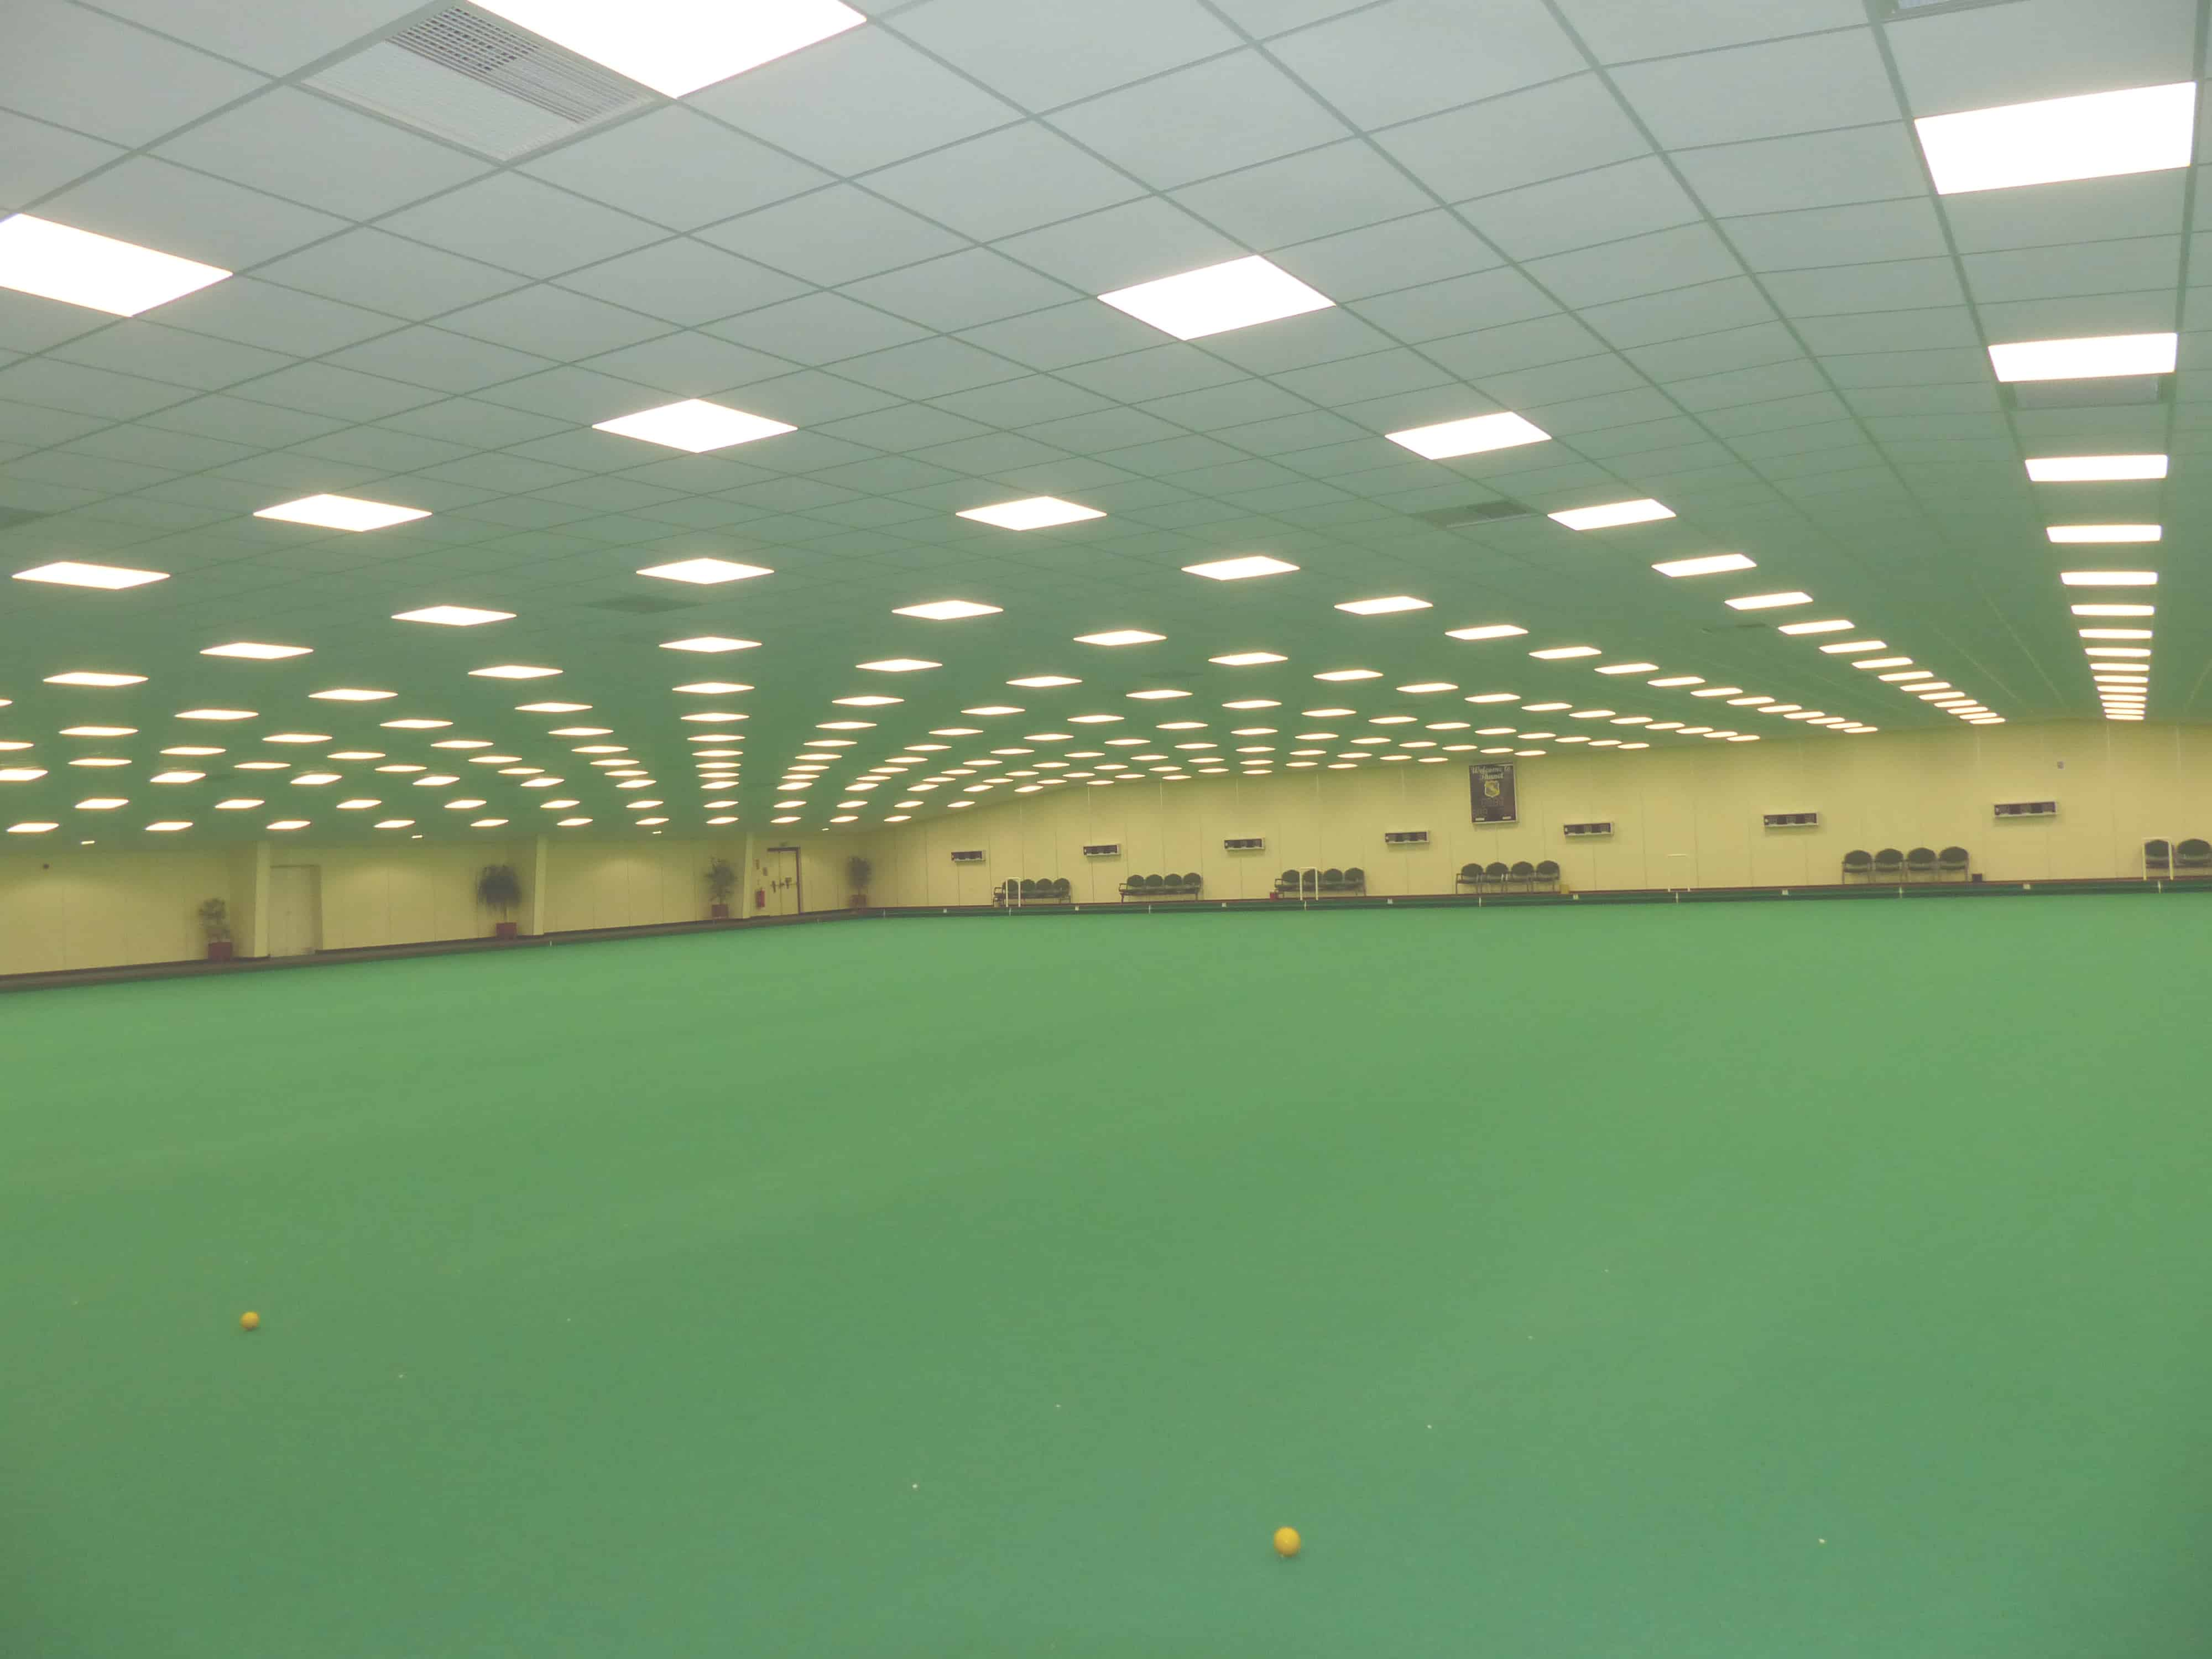 Thanet Indoor Bowls Club green